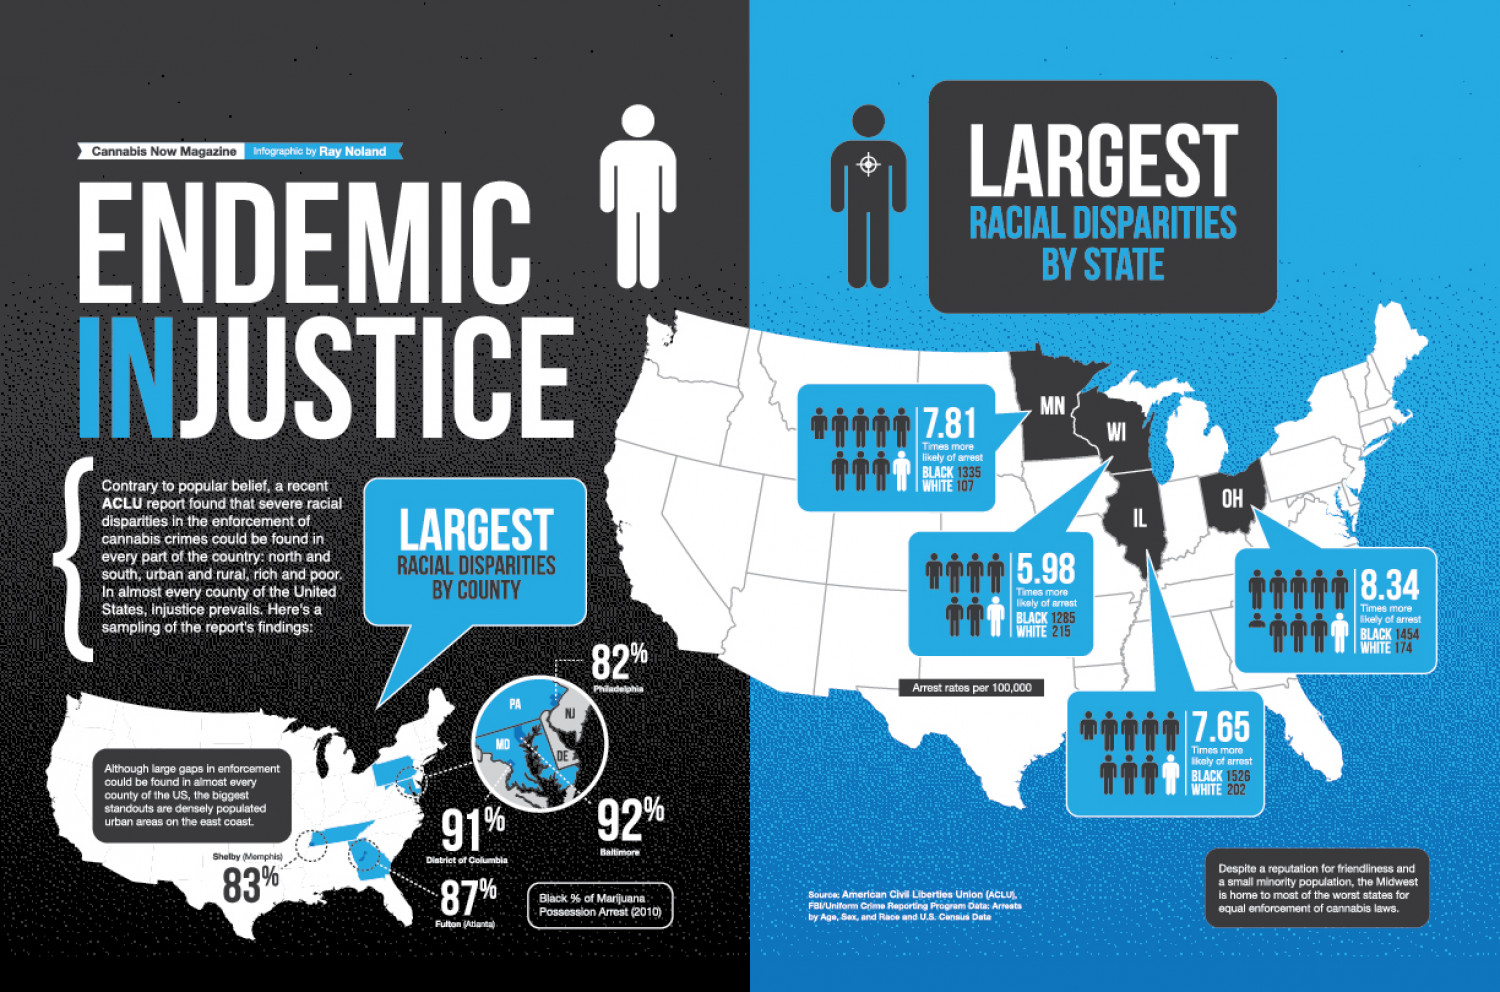 Endemic Injustice Infographic